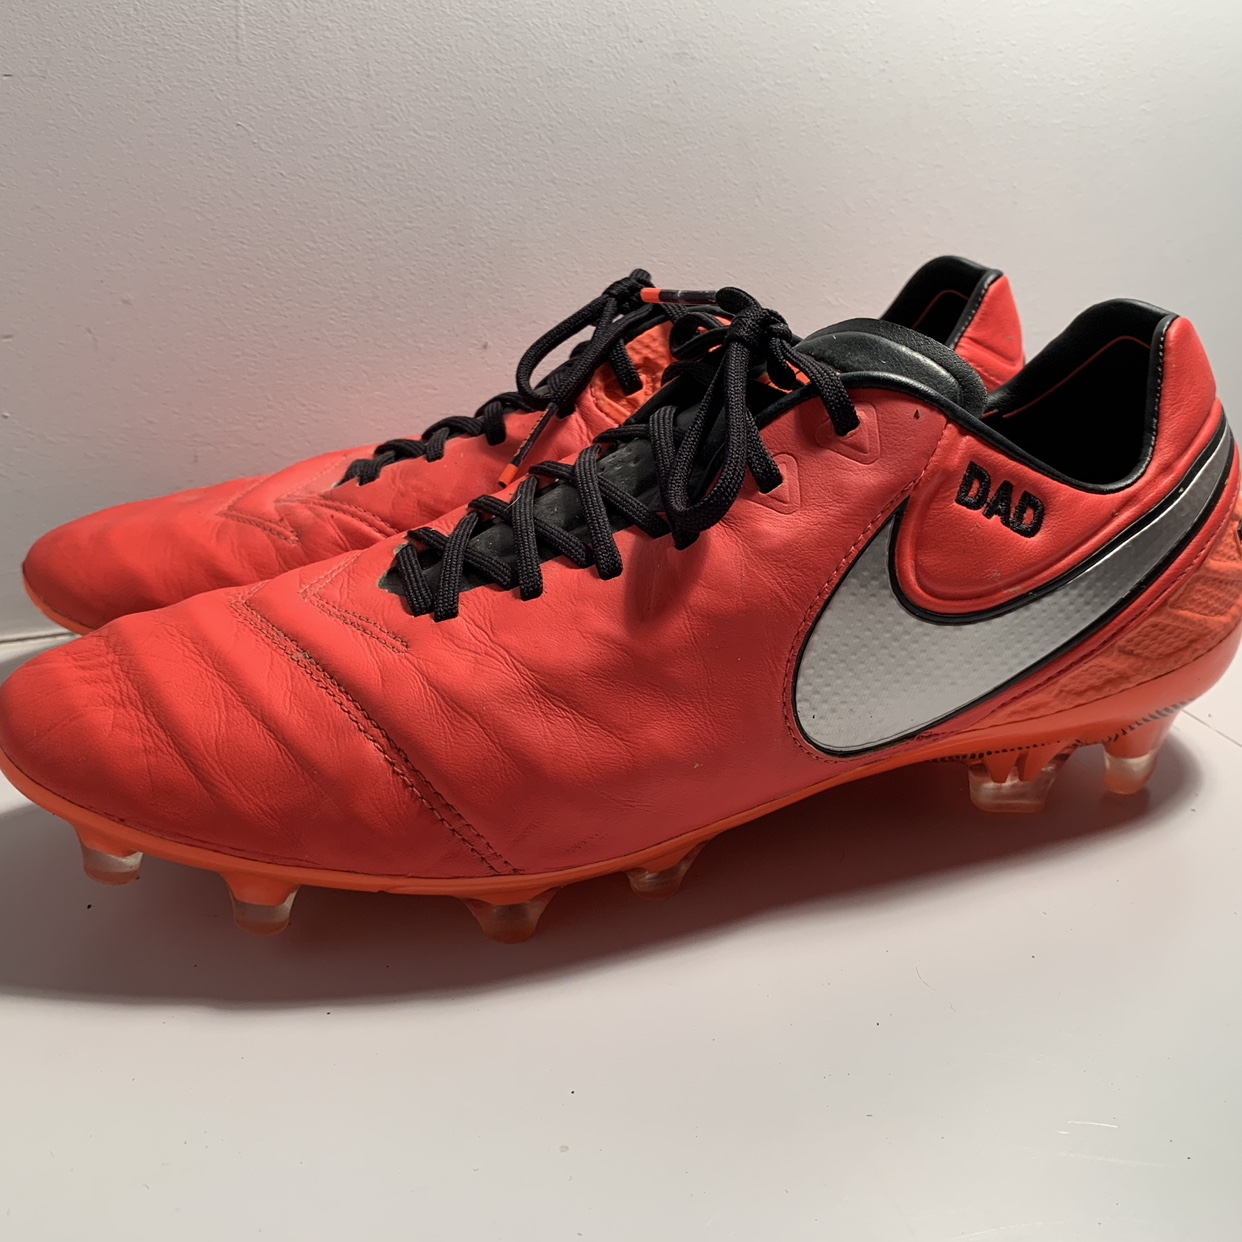 wholesale dealer c102a 58ff2 Nike Tiempo Football Boots UK Size 10 Personalised... - Depop